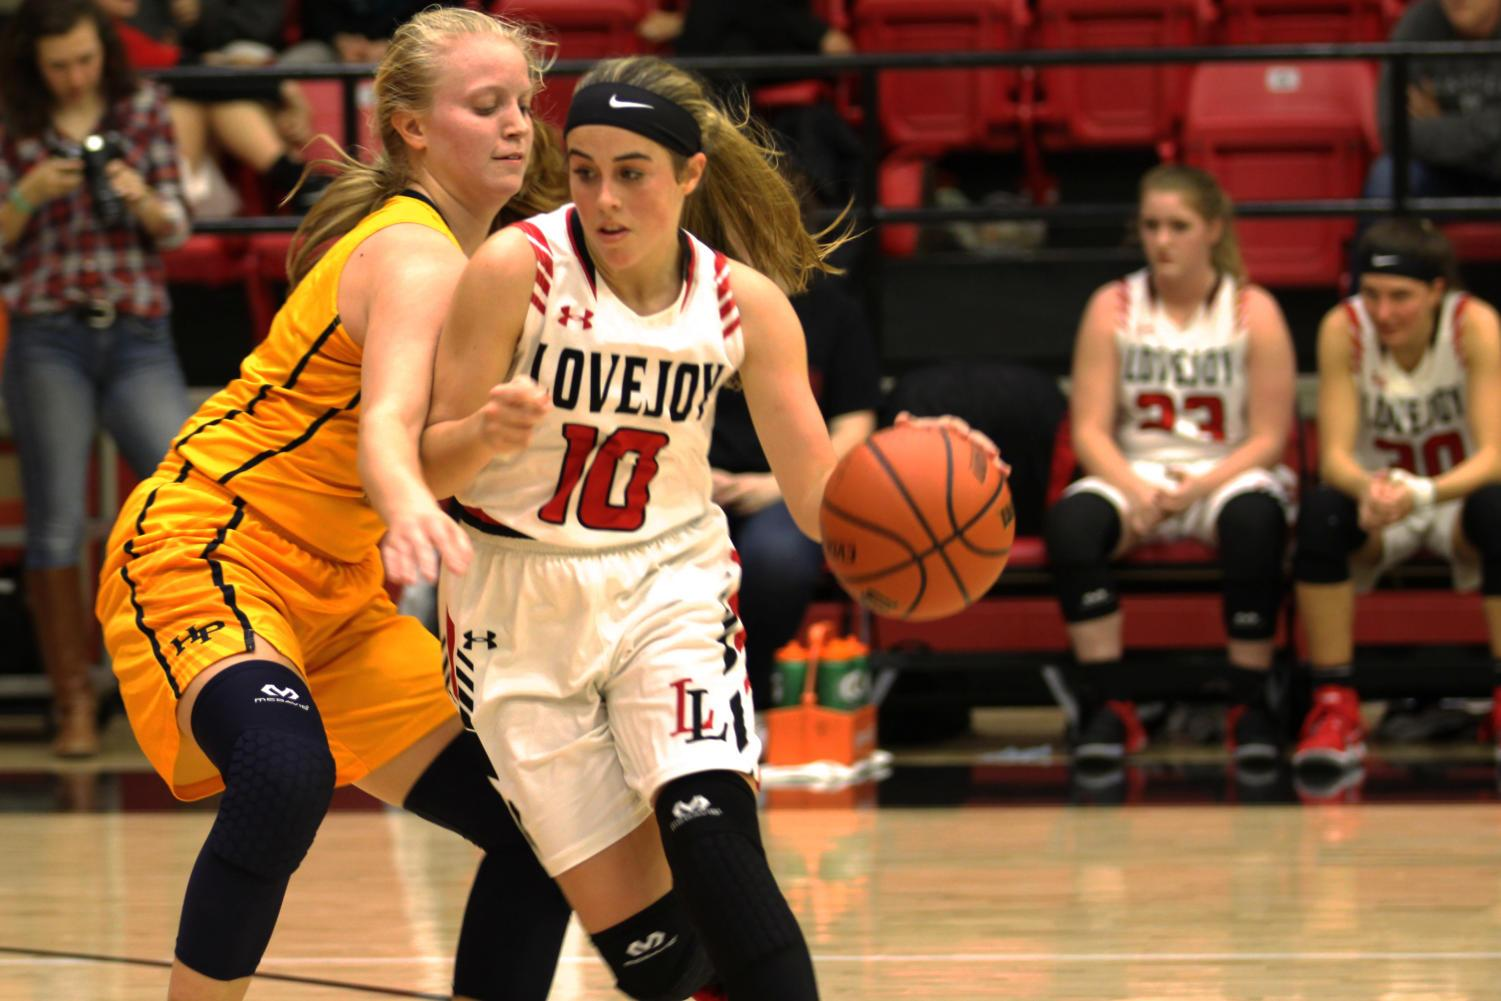 Senior Kaylee Rekieta drives the ball up the floor with pressure from the Highland Park guard.